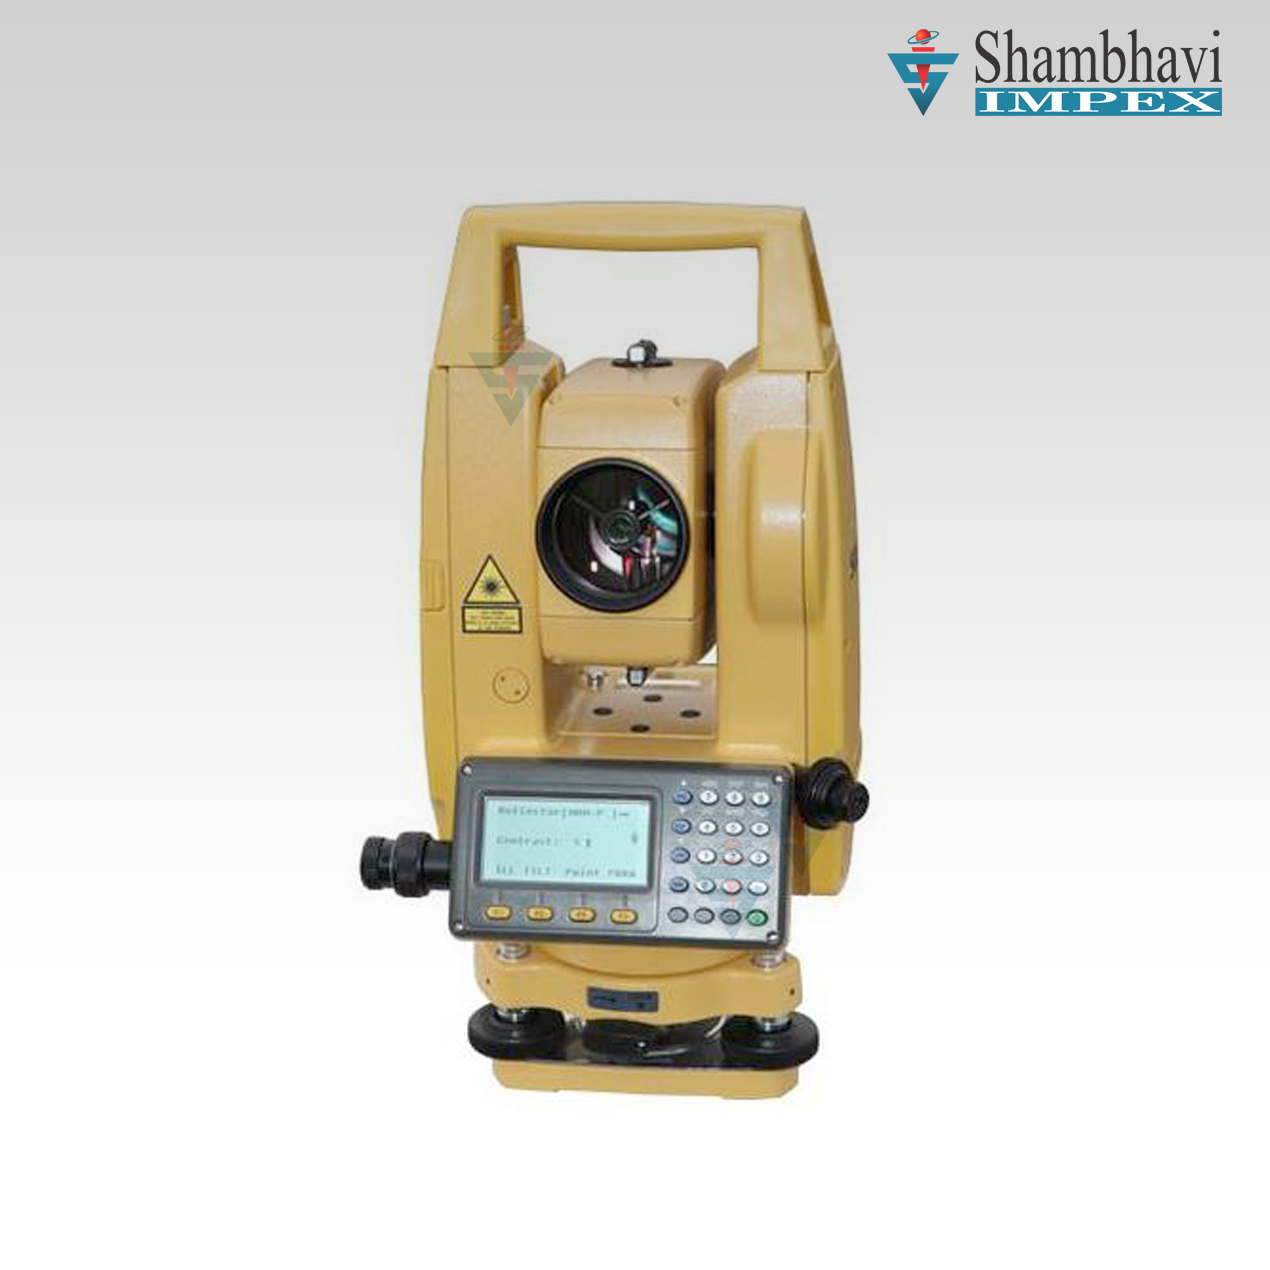 NTS-360 R Series Total Station